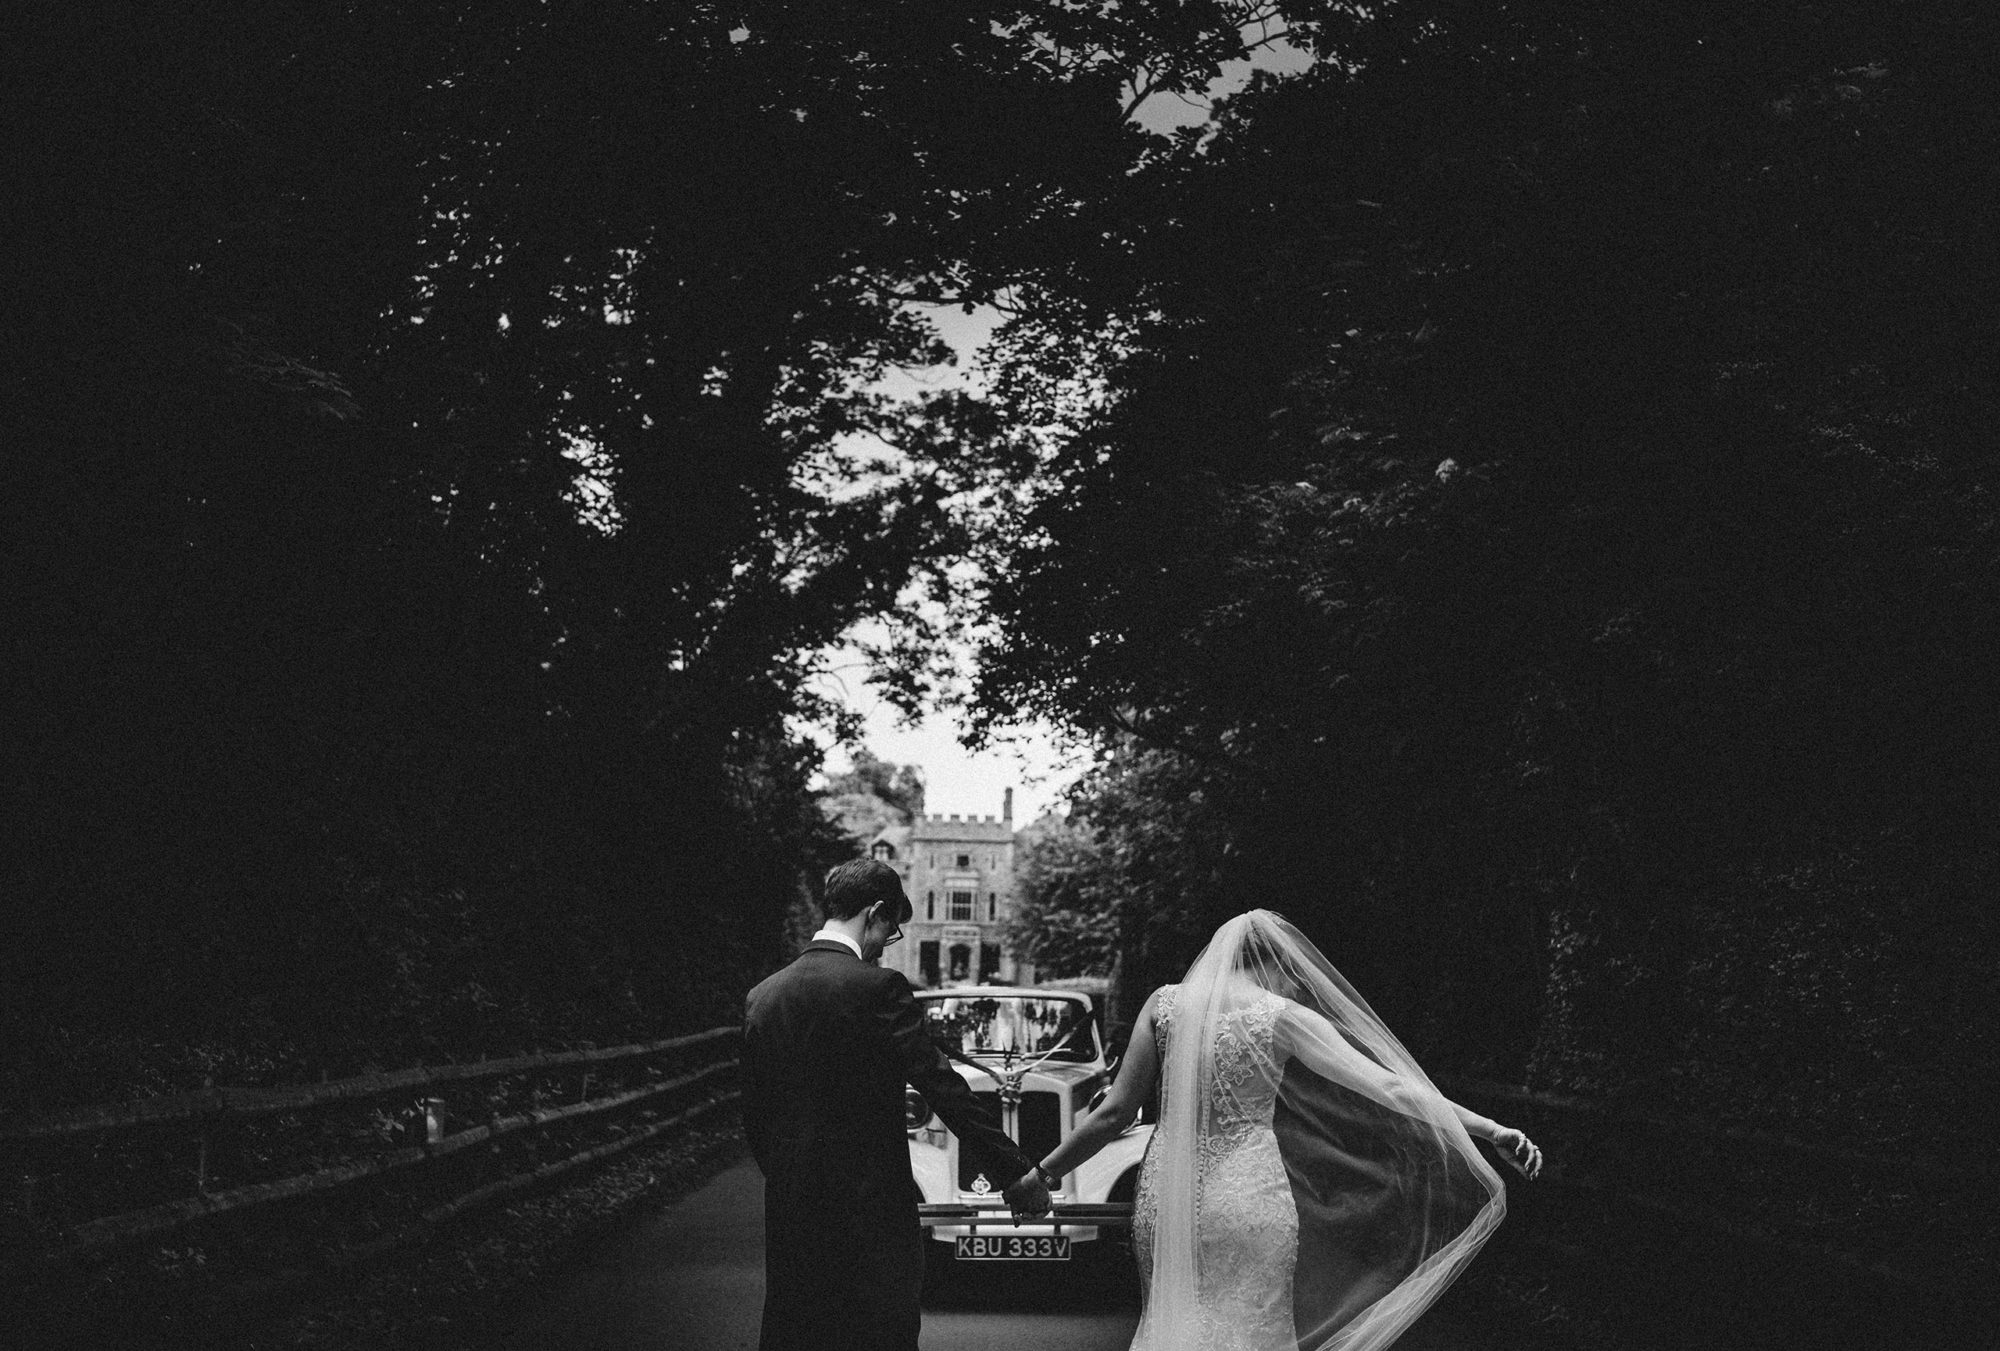 rowton castle provides the perfect backdrop as the bride and groom make their way to the wedding car